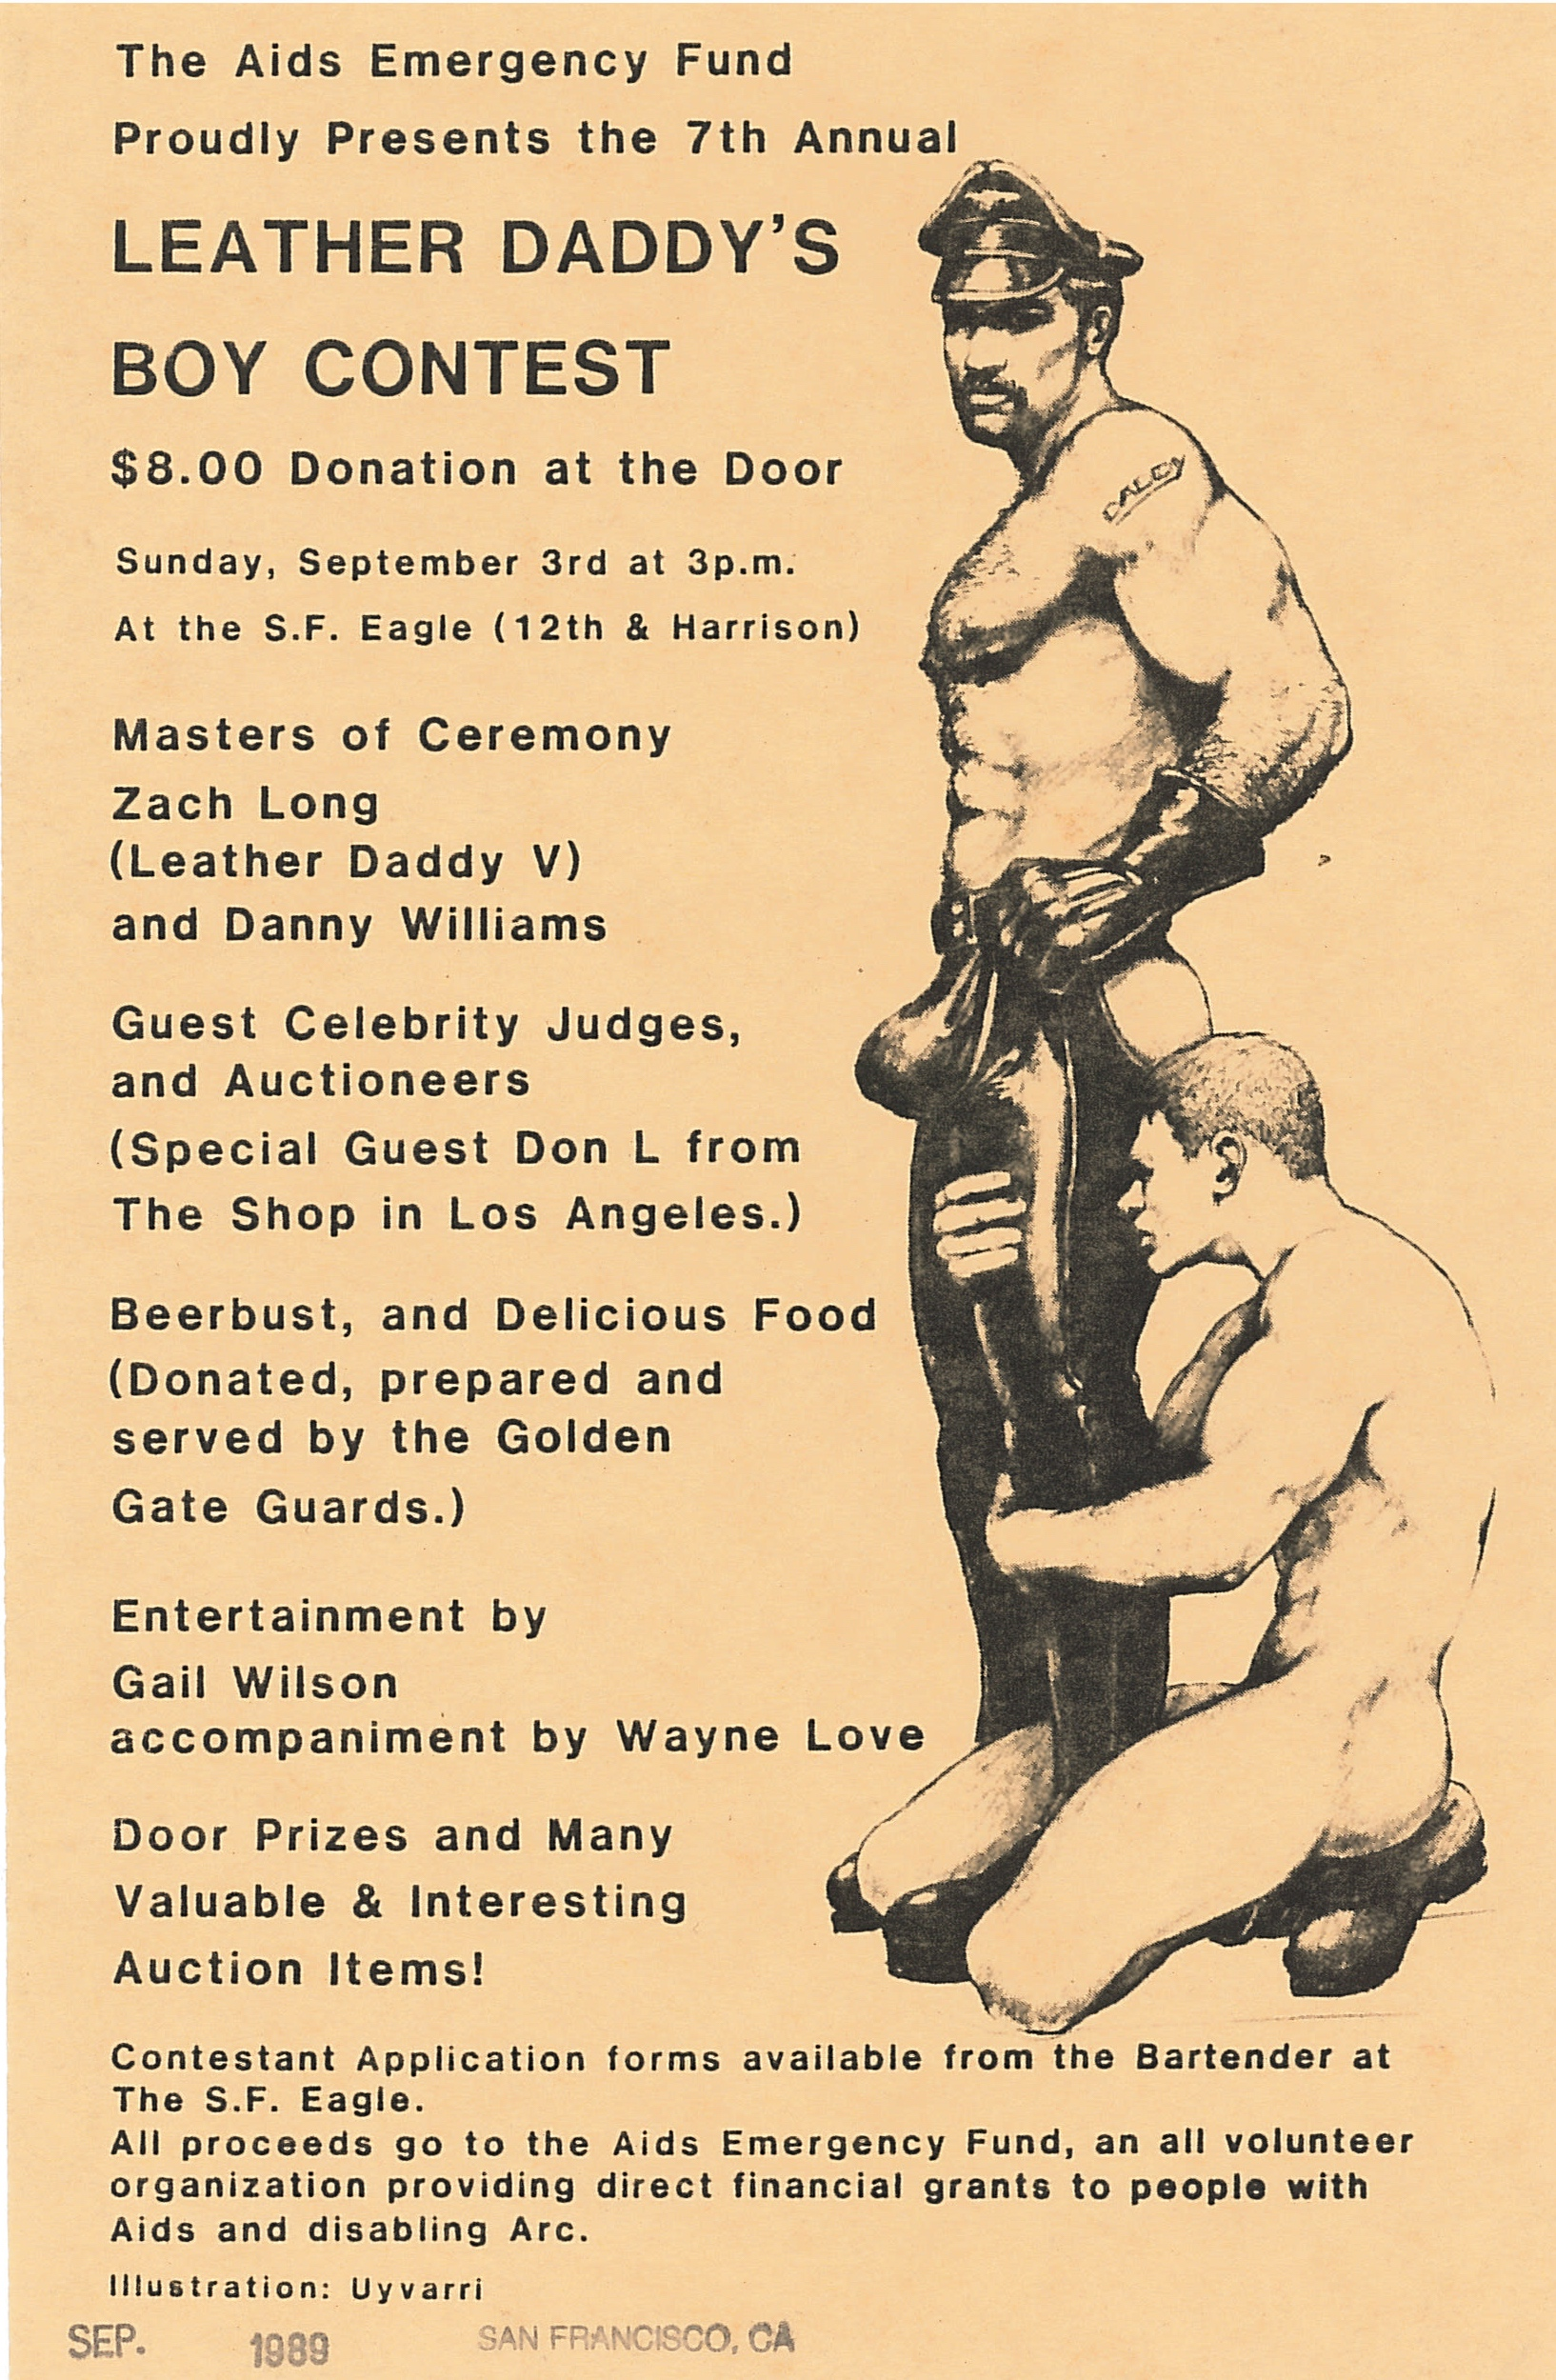 Poster for the Seventh Annual Leather Daddy's Boy Contest, presented by the AIDS Emergency Fund (1989); graphic by Robert Uyvari; collection of the GLBT Historical Society.